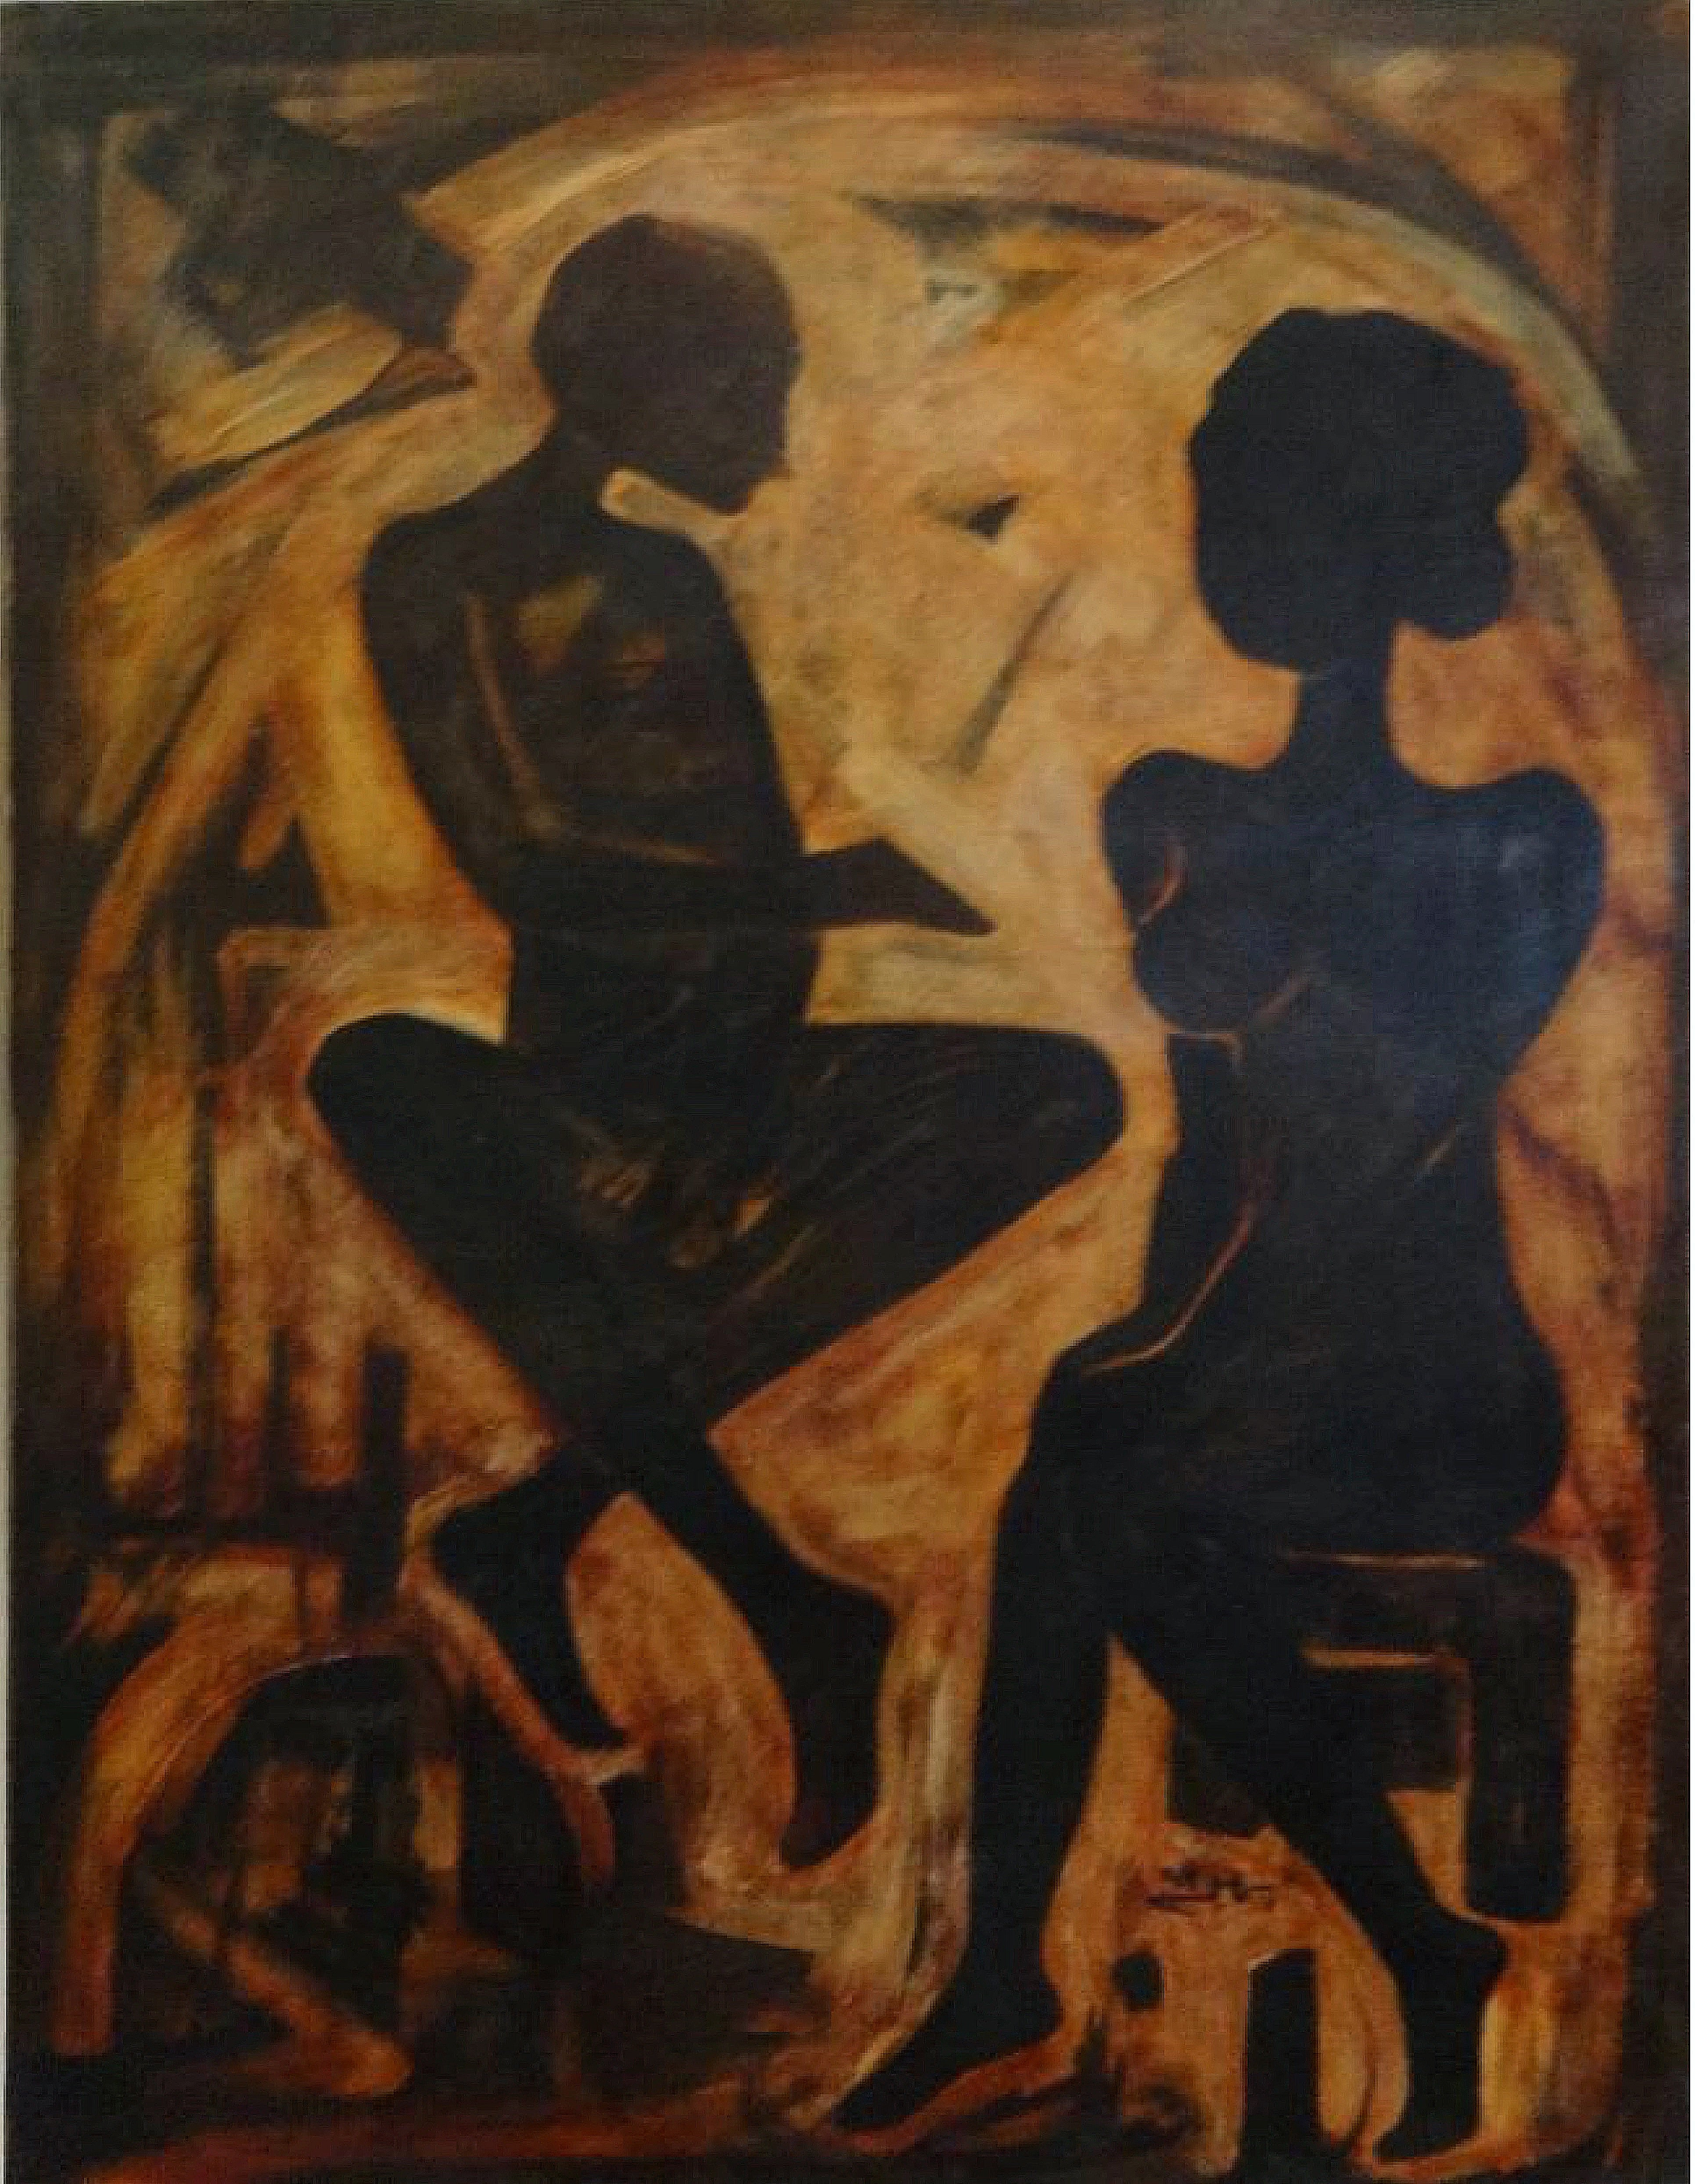 """""""Couple I"""" Oil on Wood Painting 31"""" x 24"""" inch by Mohammed Ismail"""